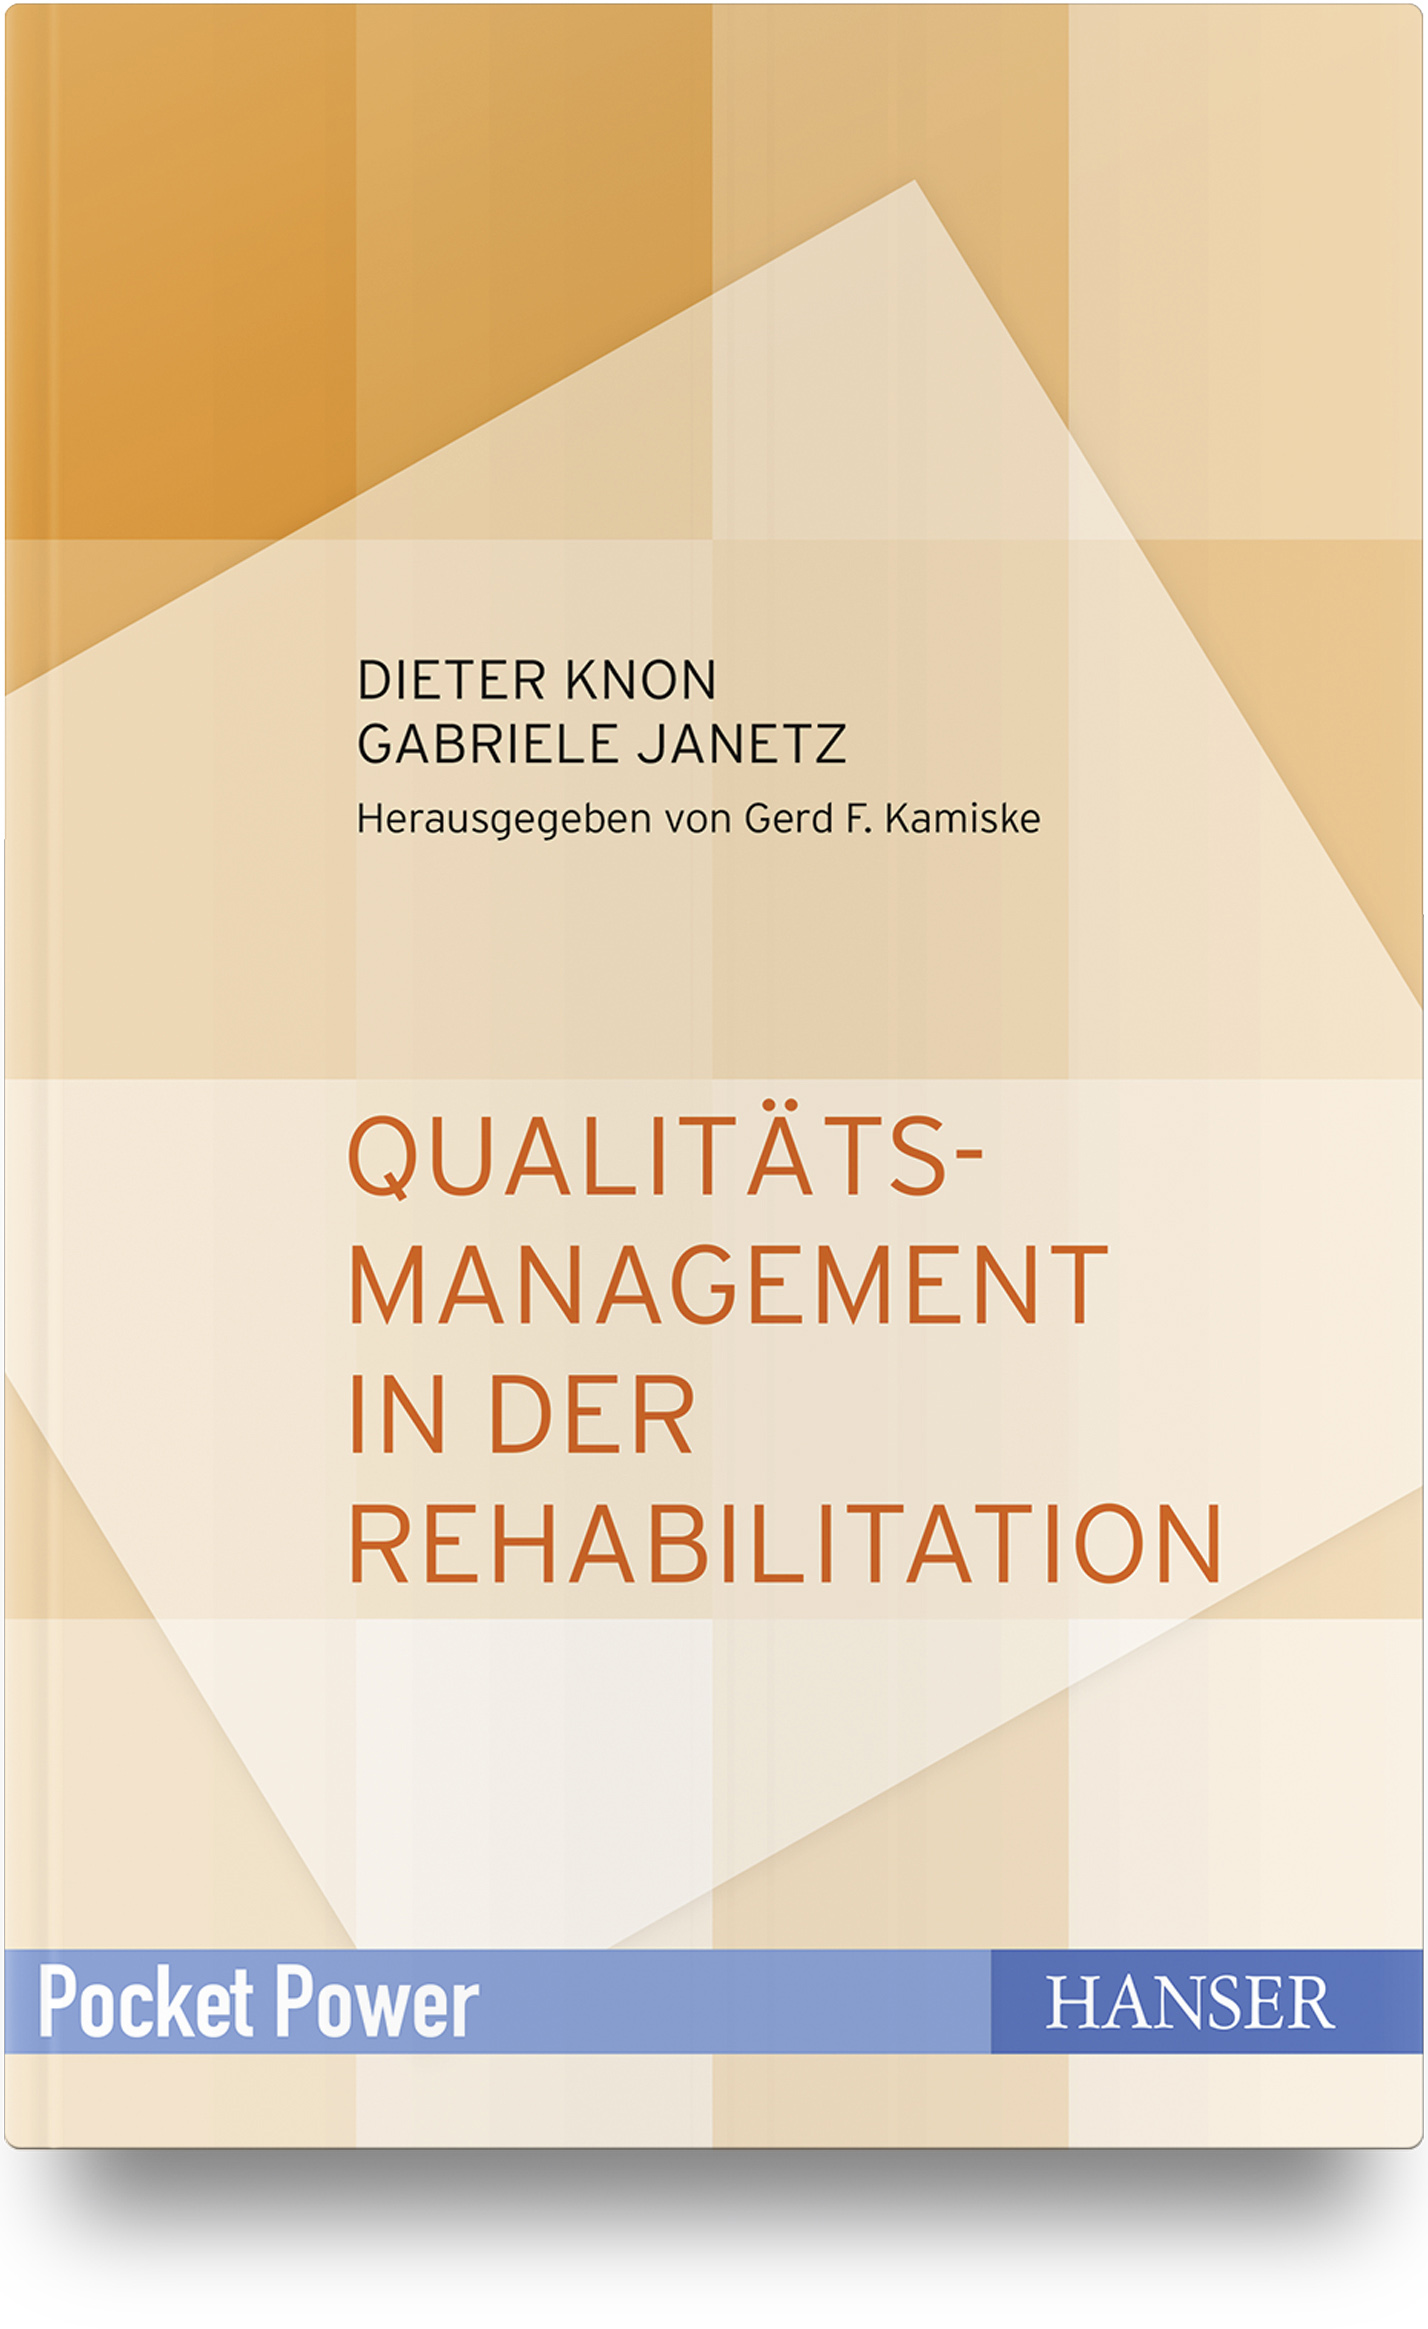 Knon, Janetz, Qualitätsmanagement in der Rehabilitation, 978-3-446-45871-0